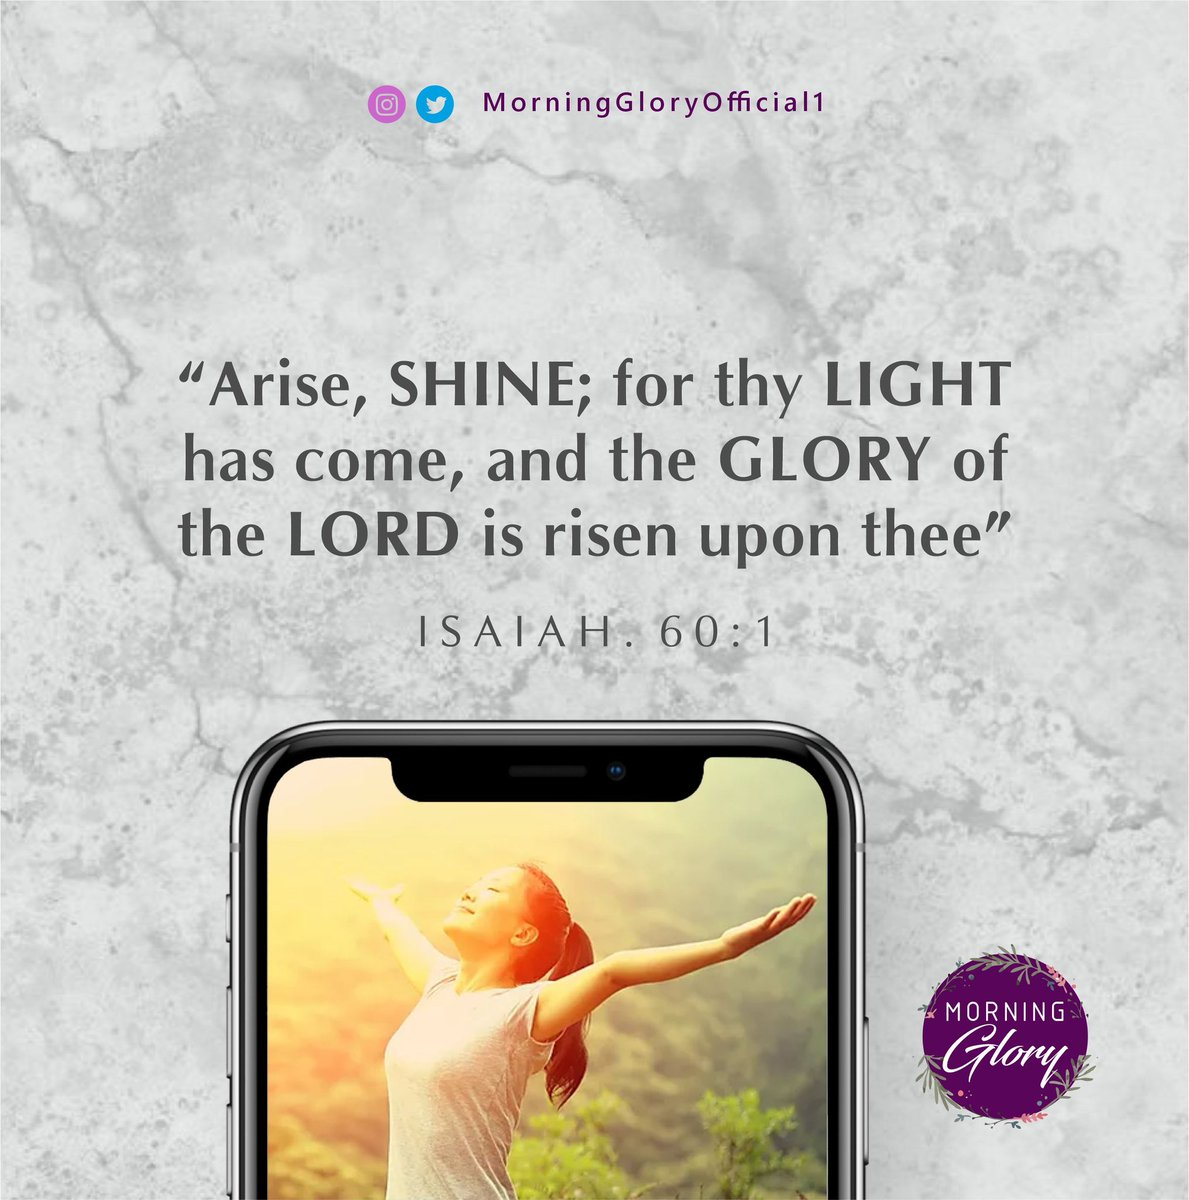 Arise and shine for your light is here. Today is that day, now is that moment for your miracle. Just believe, all things are possible #MorningGlory #morningmotivation #MotivationalQuotes #MondayMotivation #JesusIsComing #MondayMorning #WordOfTheDay #mondaythoughts #AriseAndShinepic.twitter.com/2cZXcpkVGA